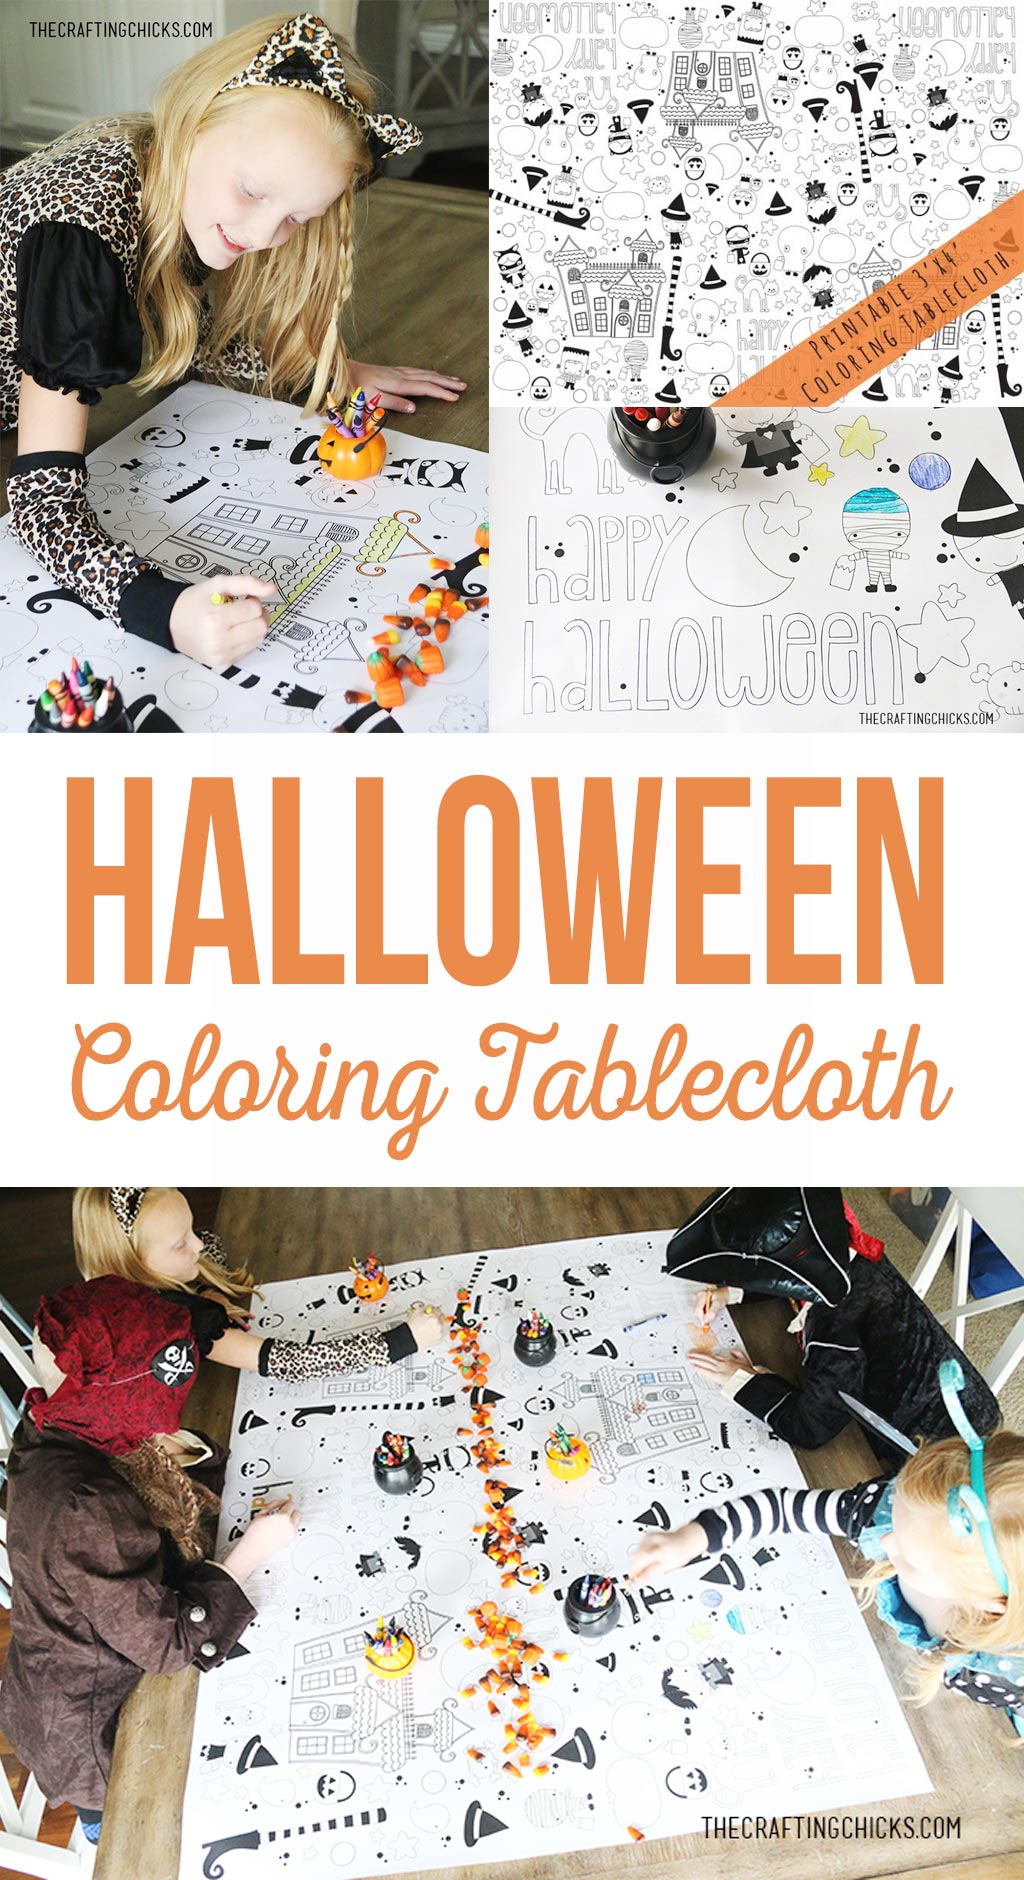 Halloween Printable Coloring Tablecloth | Fun activity for class parties, preschool activities or play dates